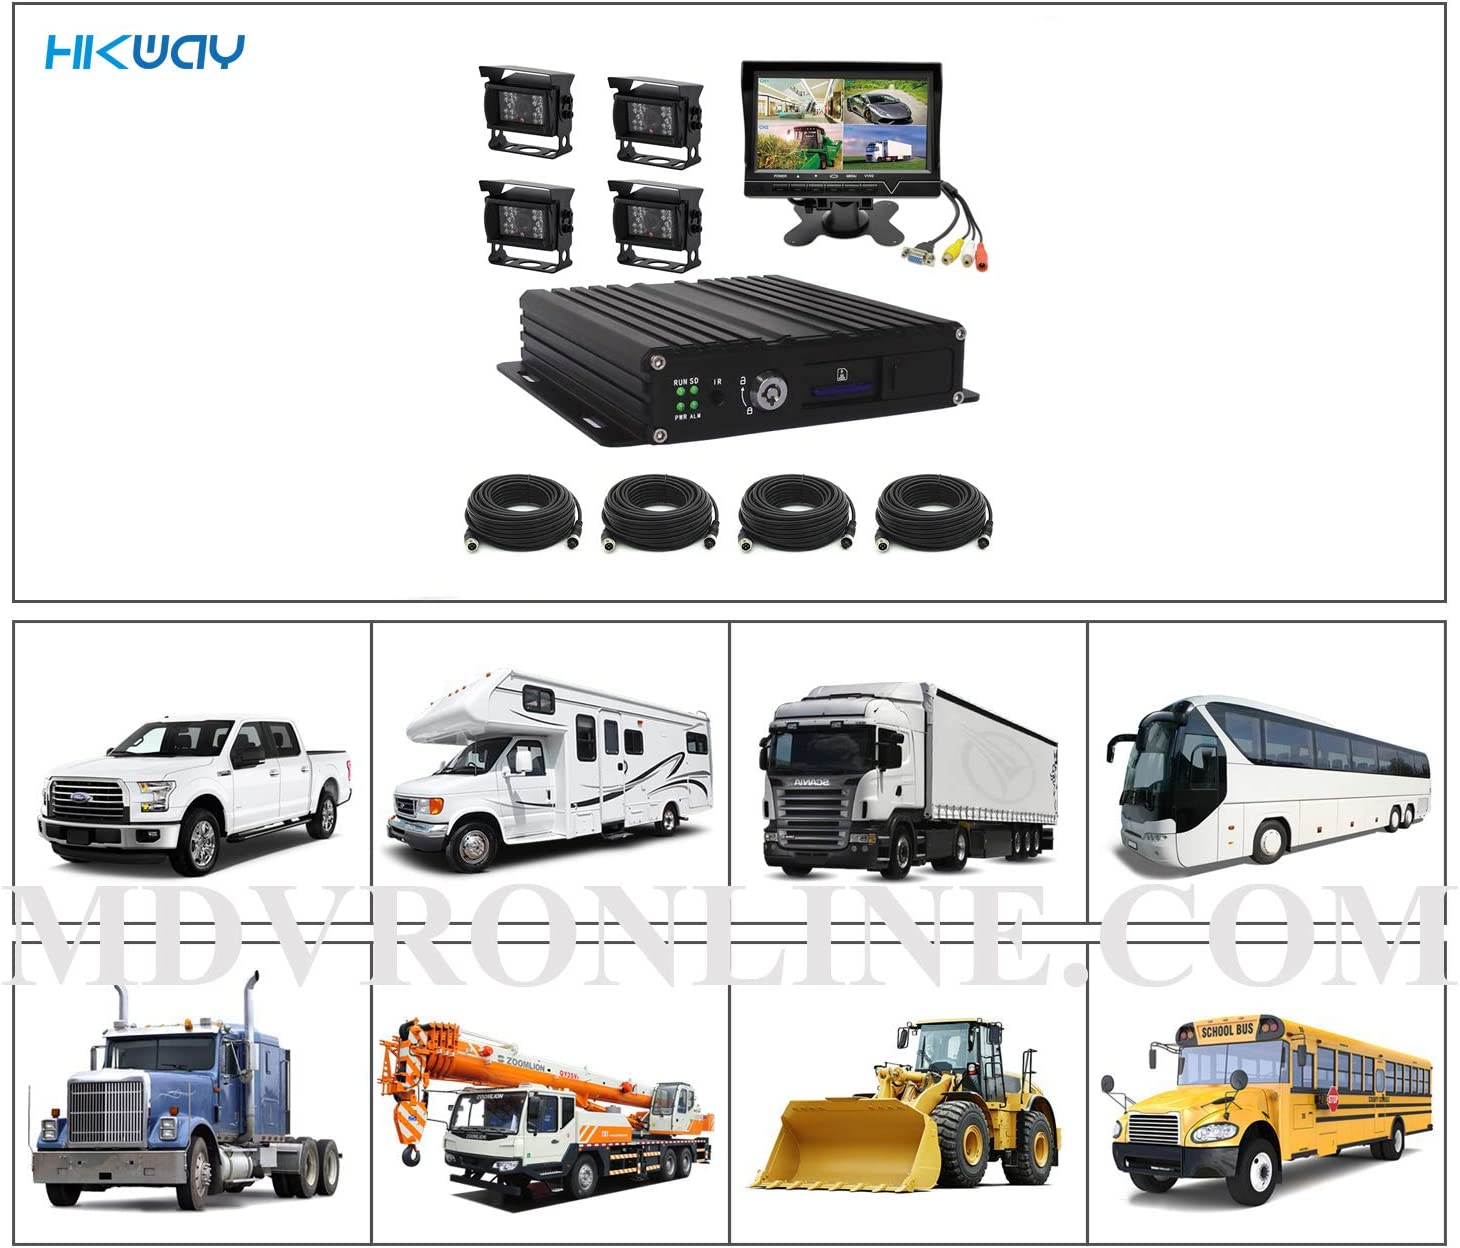 Standard MDVR HIKWAY MDVR Kit 4 Channel H.264 AHD 720P SD Mobile DVR 128GB SD Included Vehicle MDVR CCTV Video Recorder Kit Night Vision Waterproof Car Rear and Side View Camera 7 inch Car Monitor